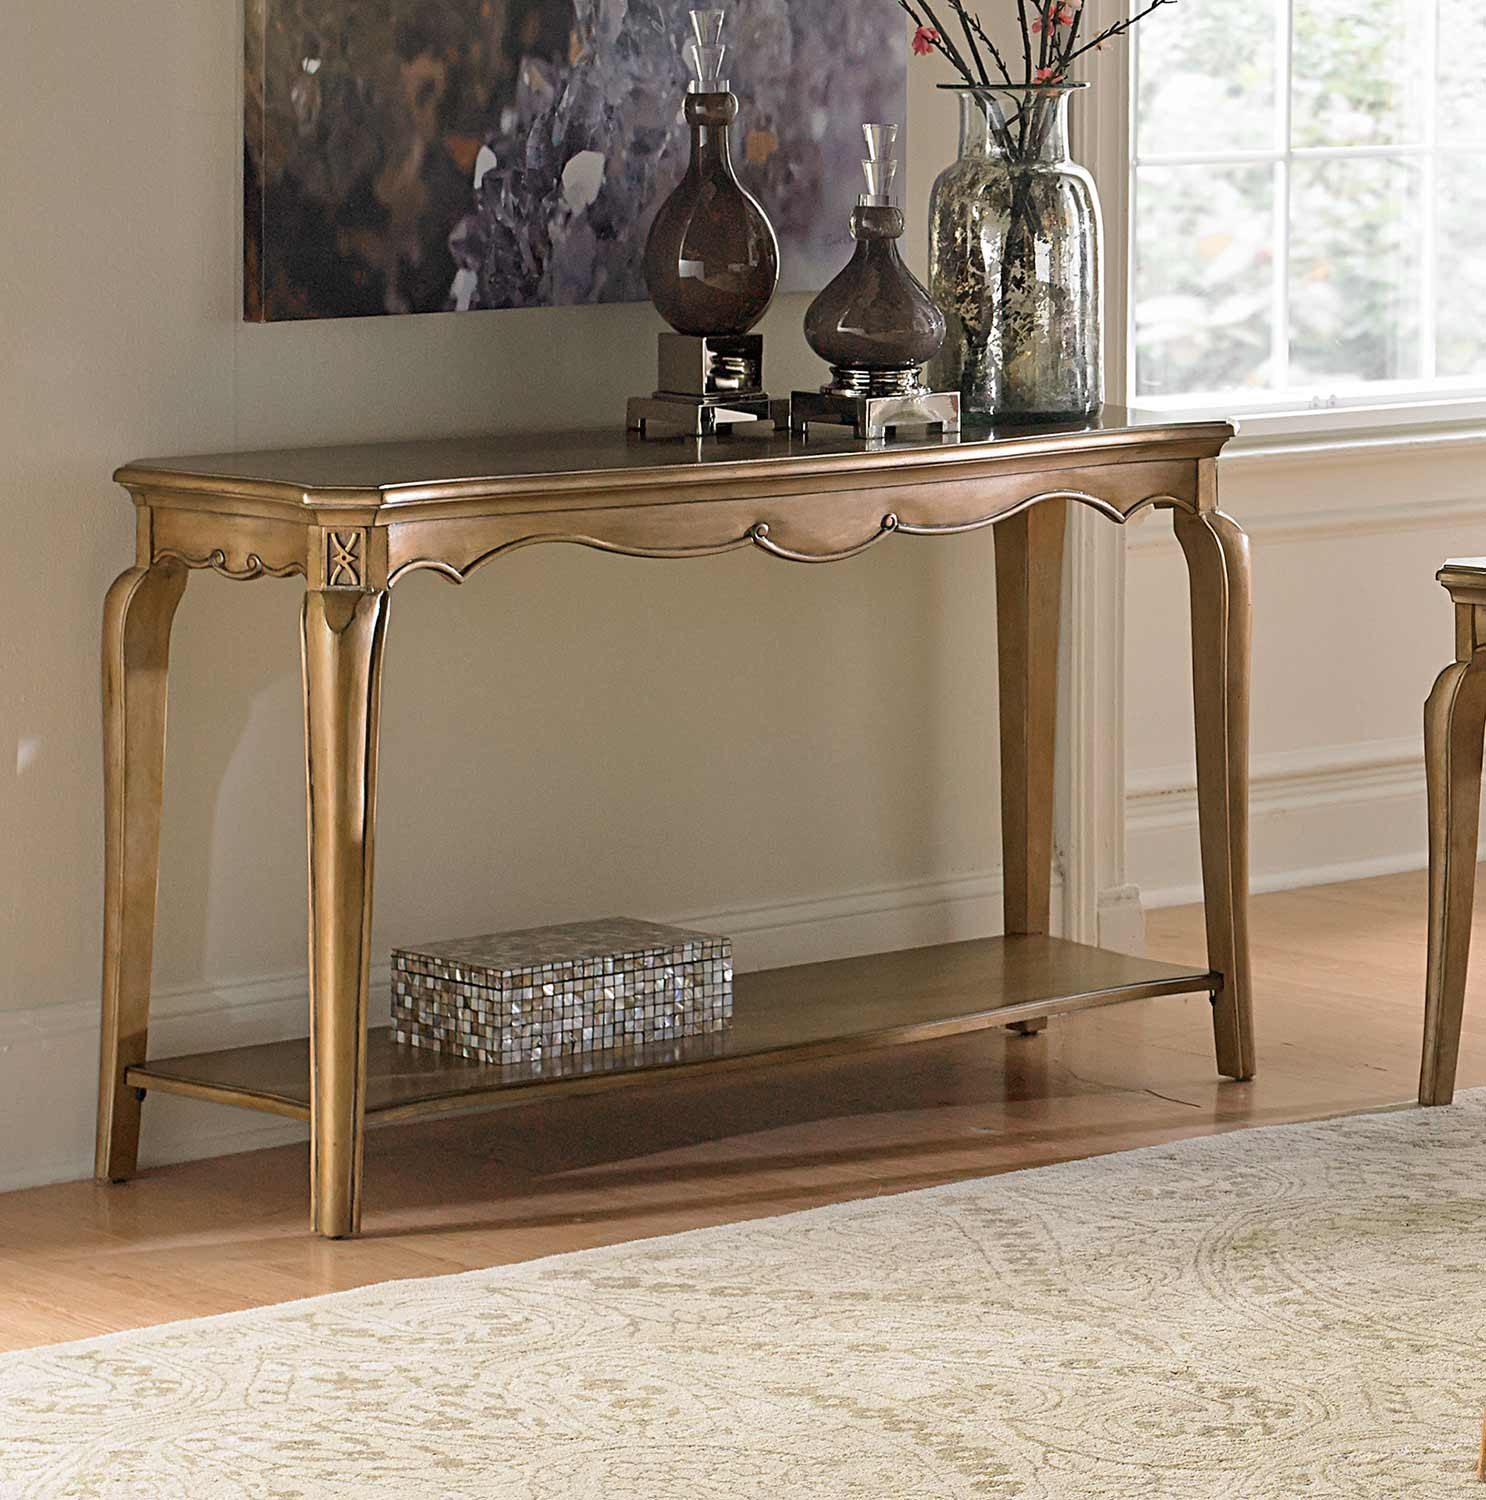 Homelegance Chambord Sofa Table - Champagne Gold